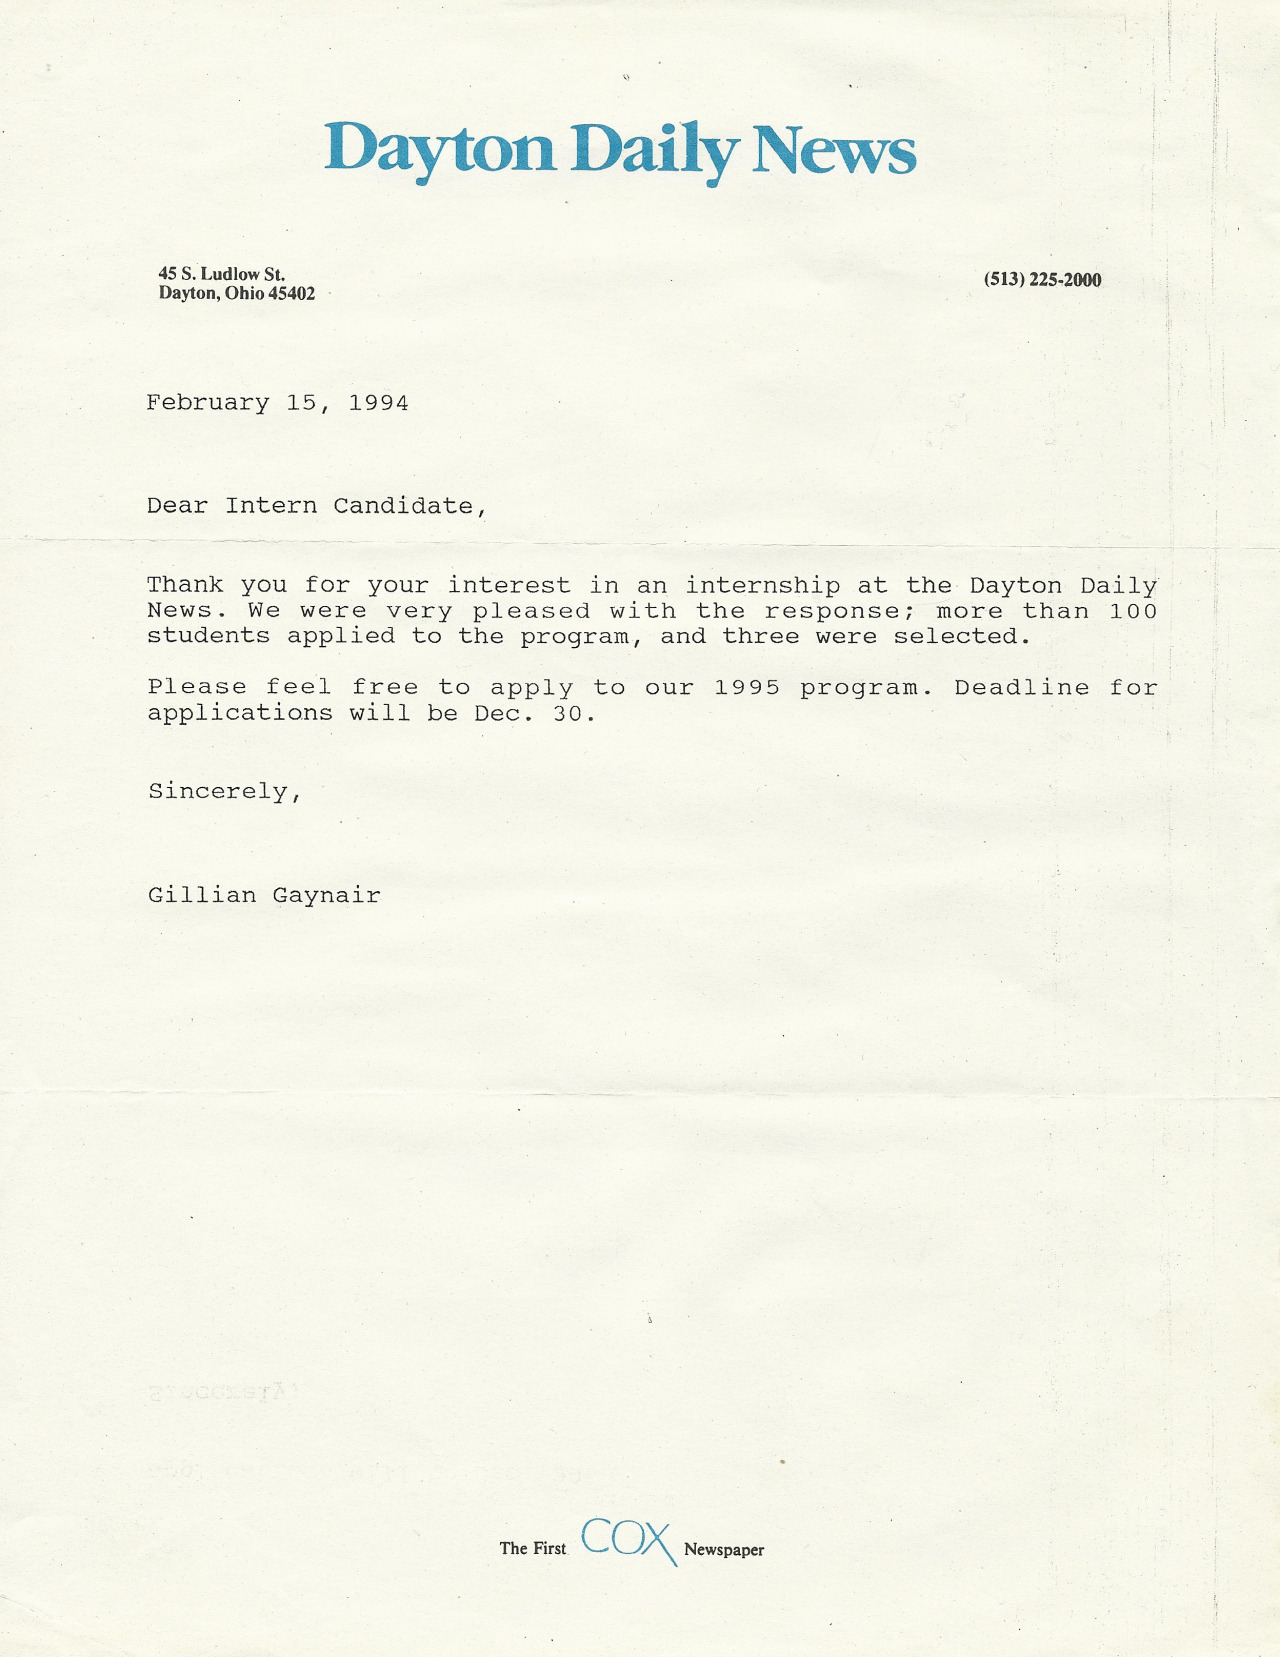 DDN rejection letter